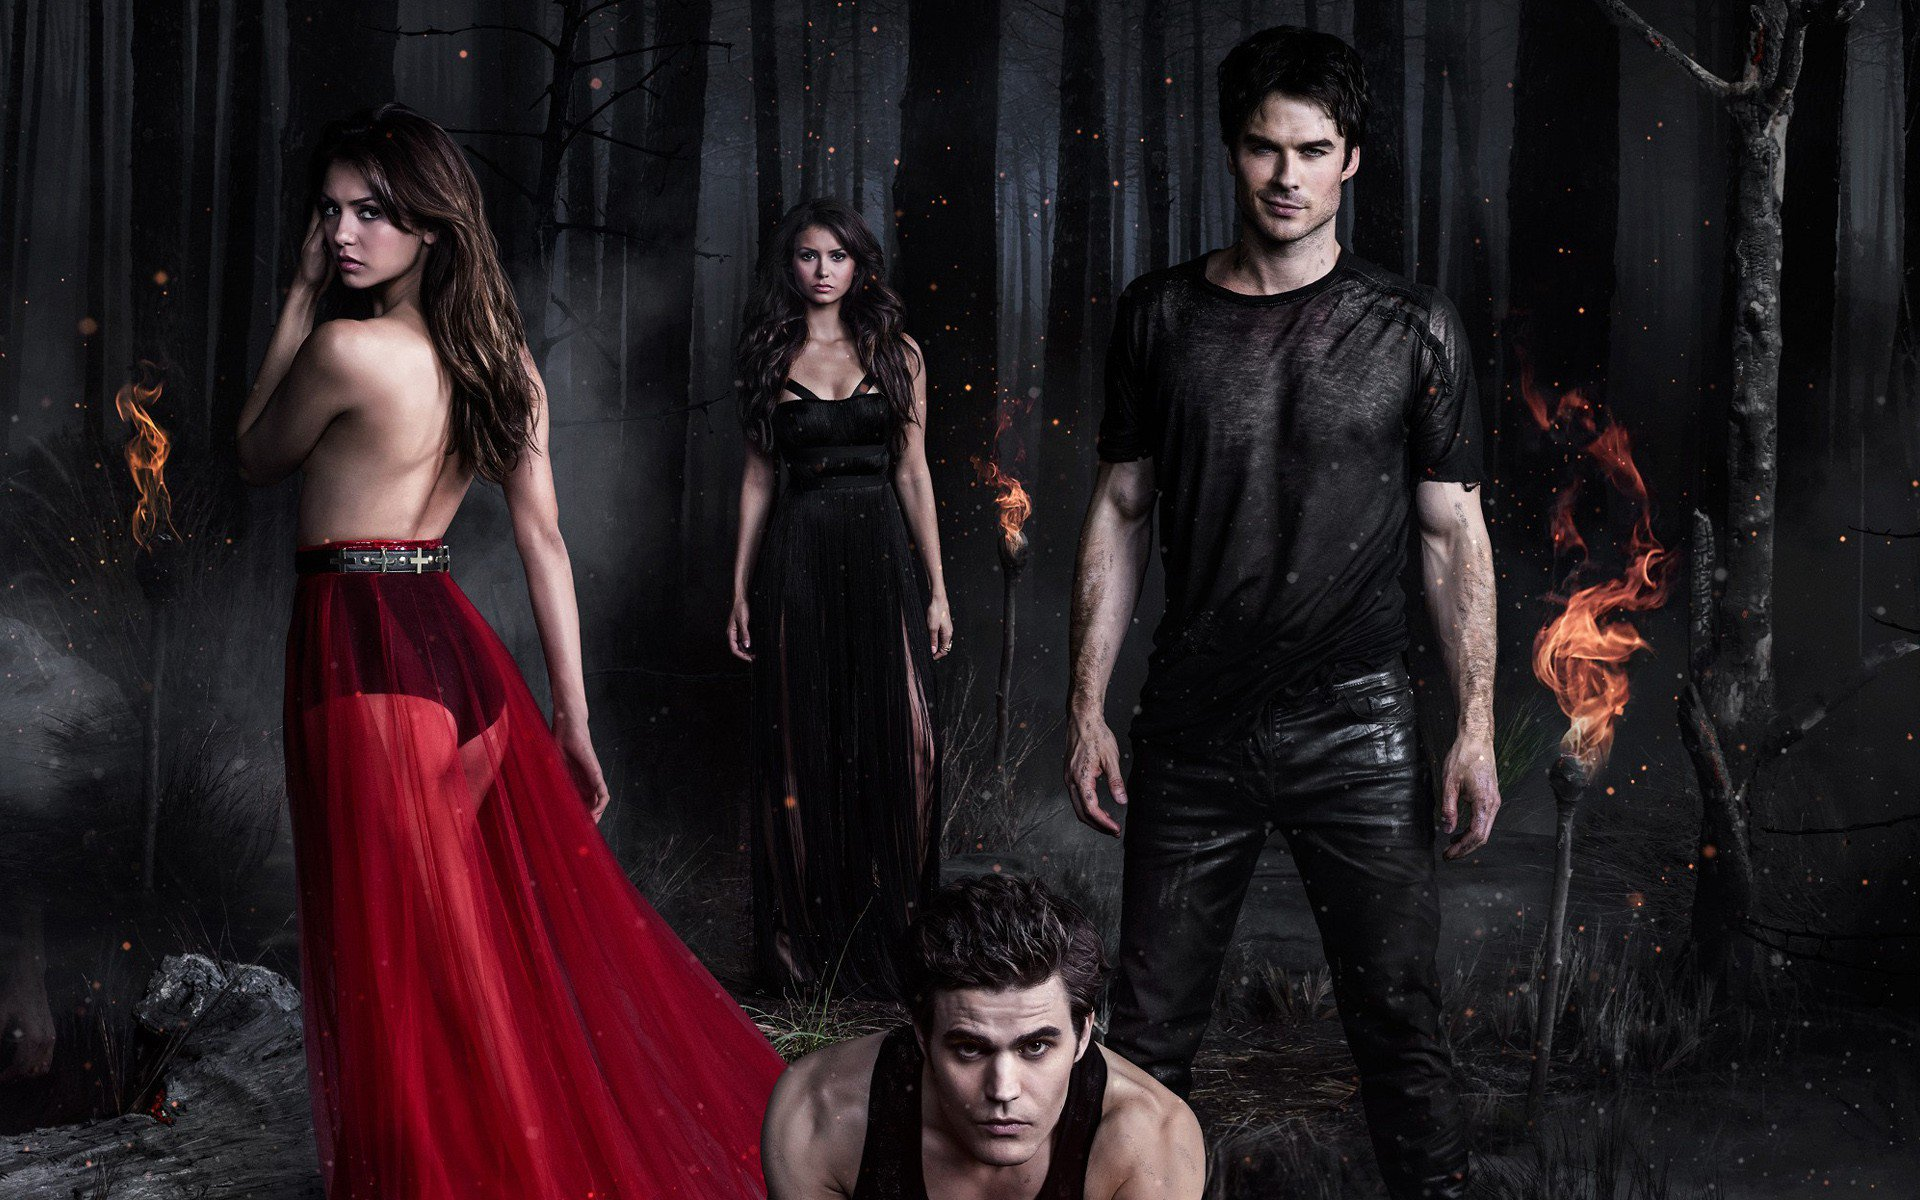 Wallpaper The Vampire Diaries: The Vampire Diaries HD, HD Tv Shows, 4k Wallpapers, Images